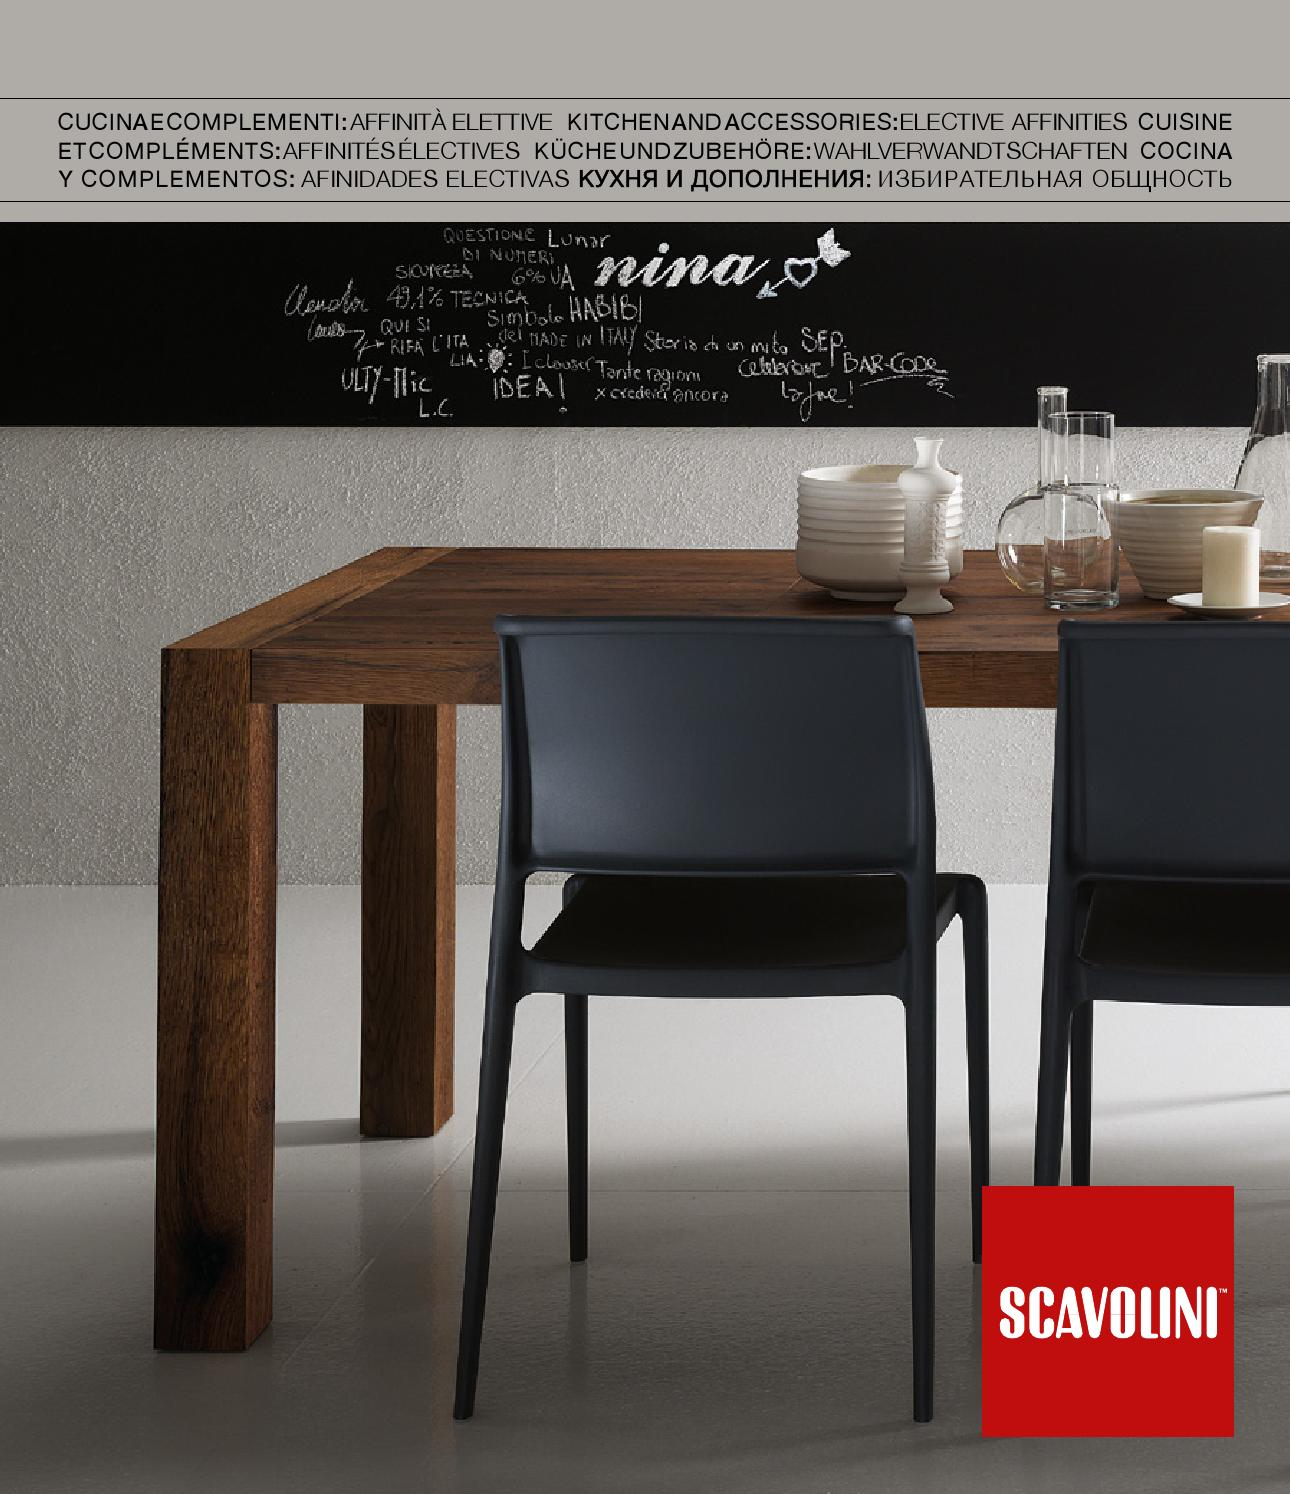 Best Tavoli Cucina Scavolini Images - Home Interior Ideas ...